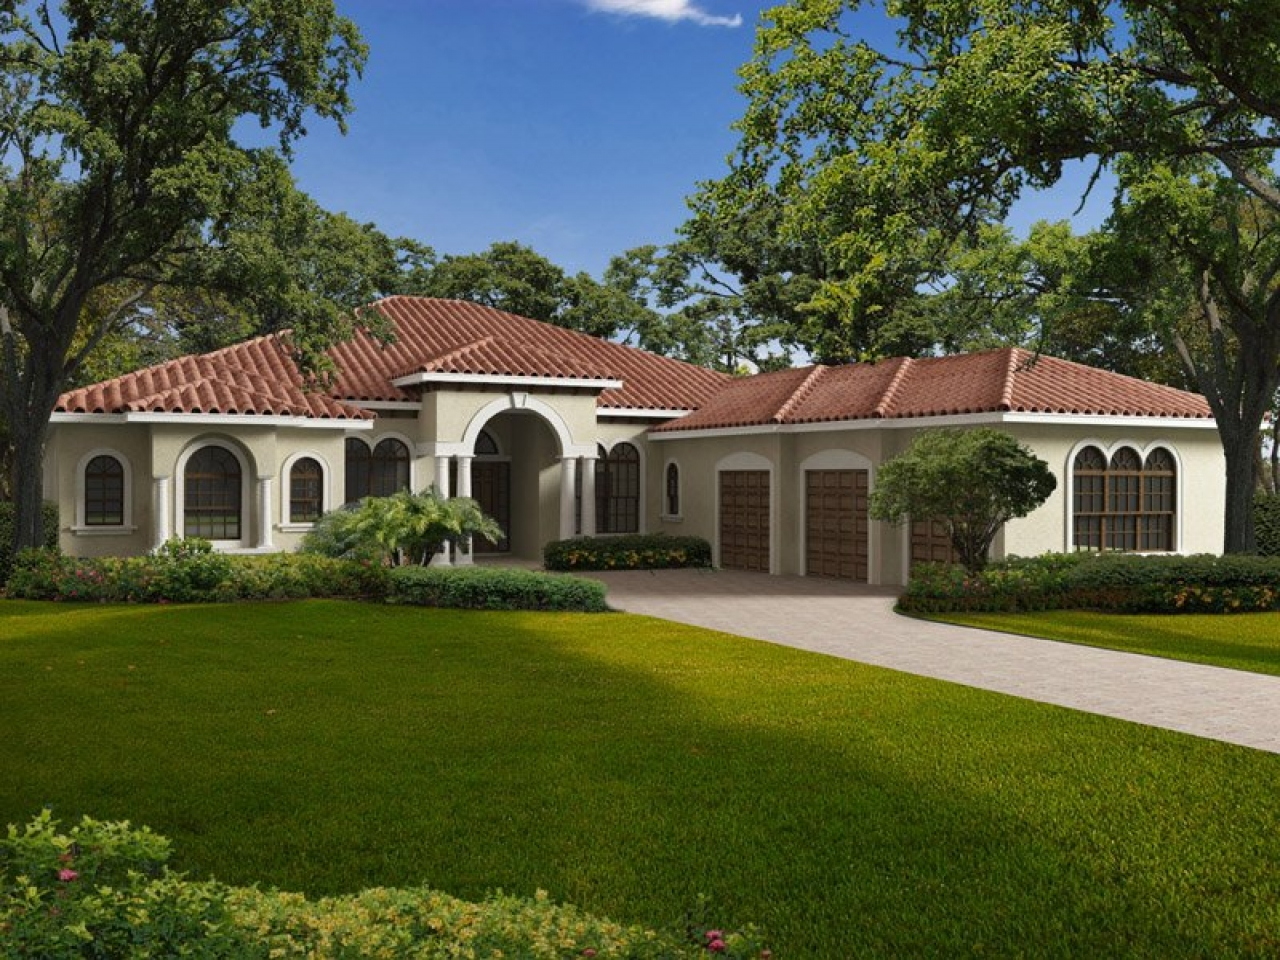 Single Story Mediterranean House Plans One Story